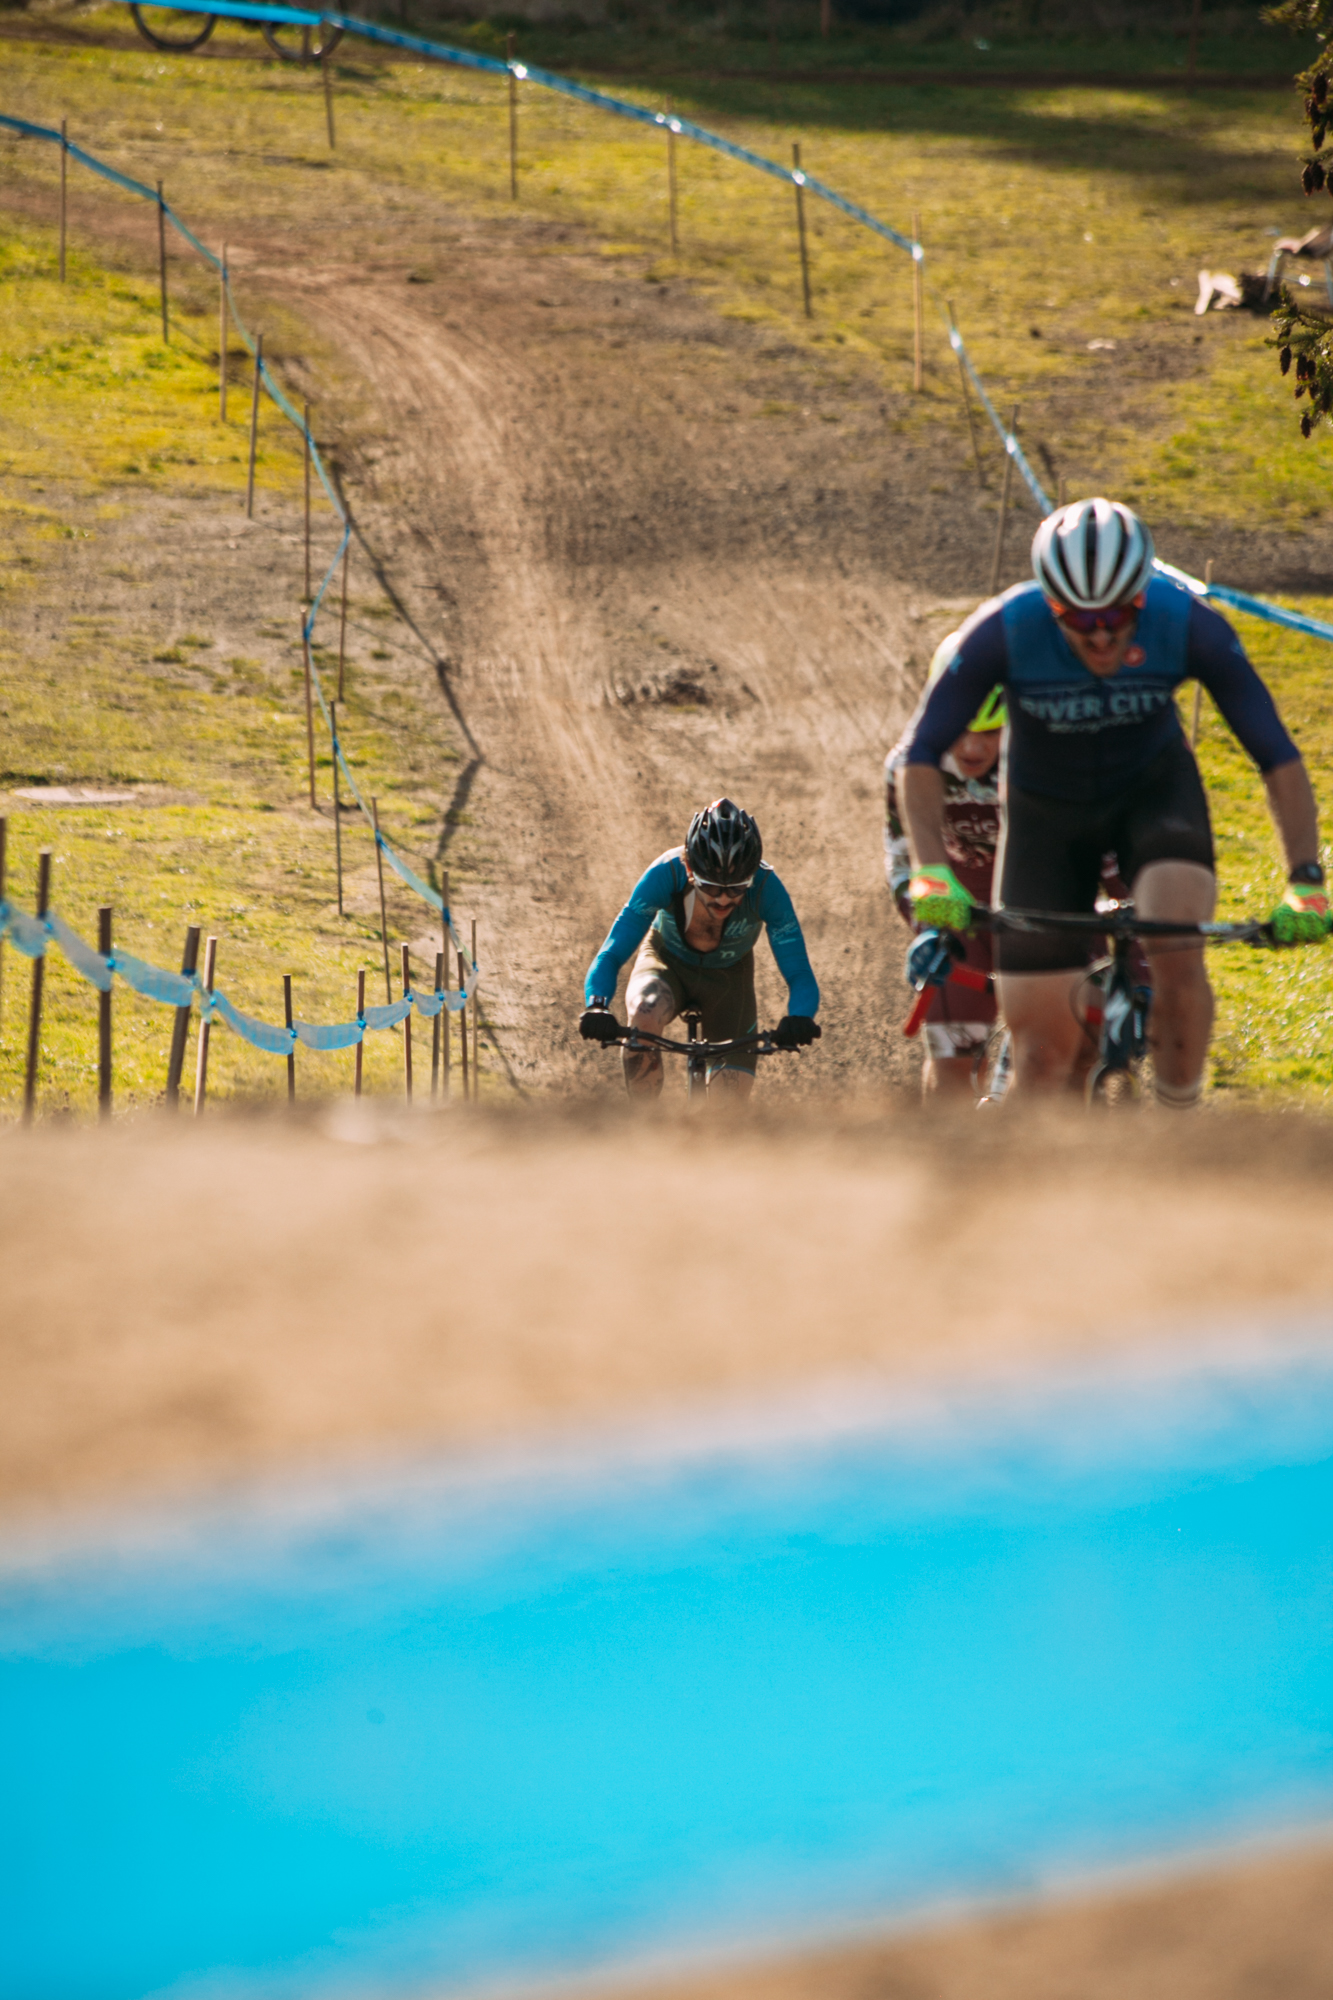 Cyclocross18_CCCX_RainierHS-225-mettlecycling.jpg